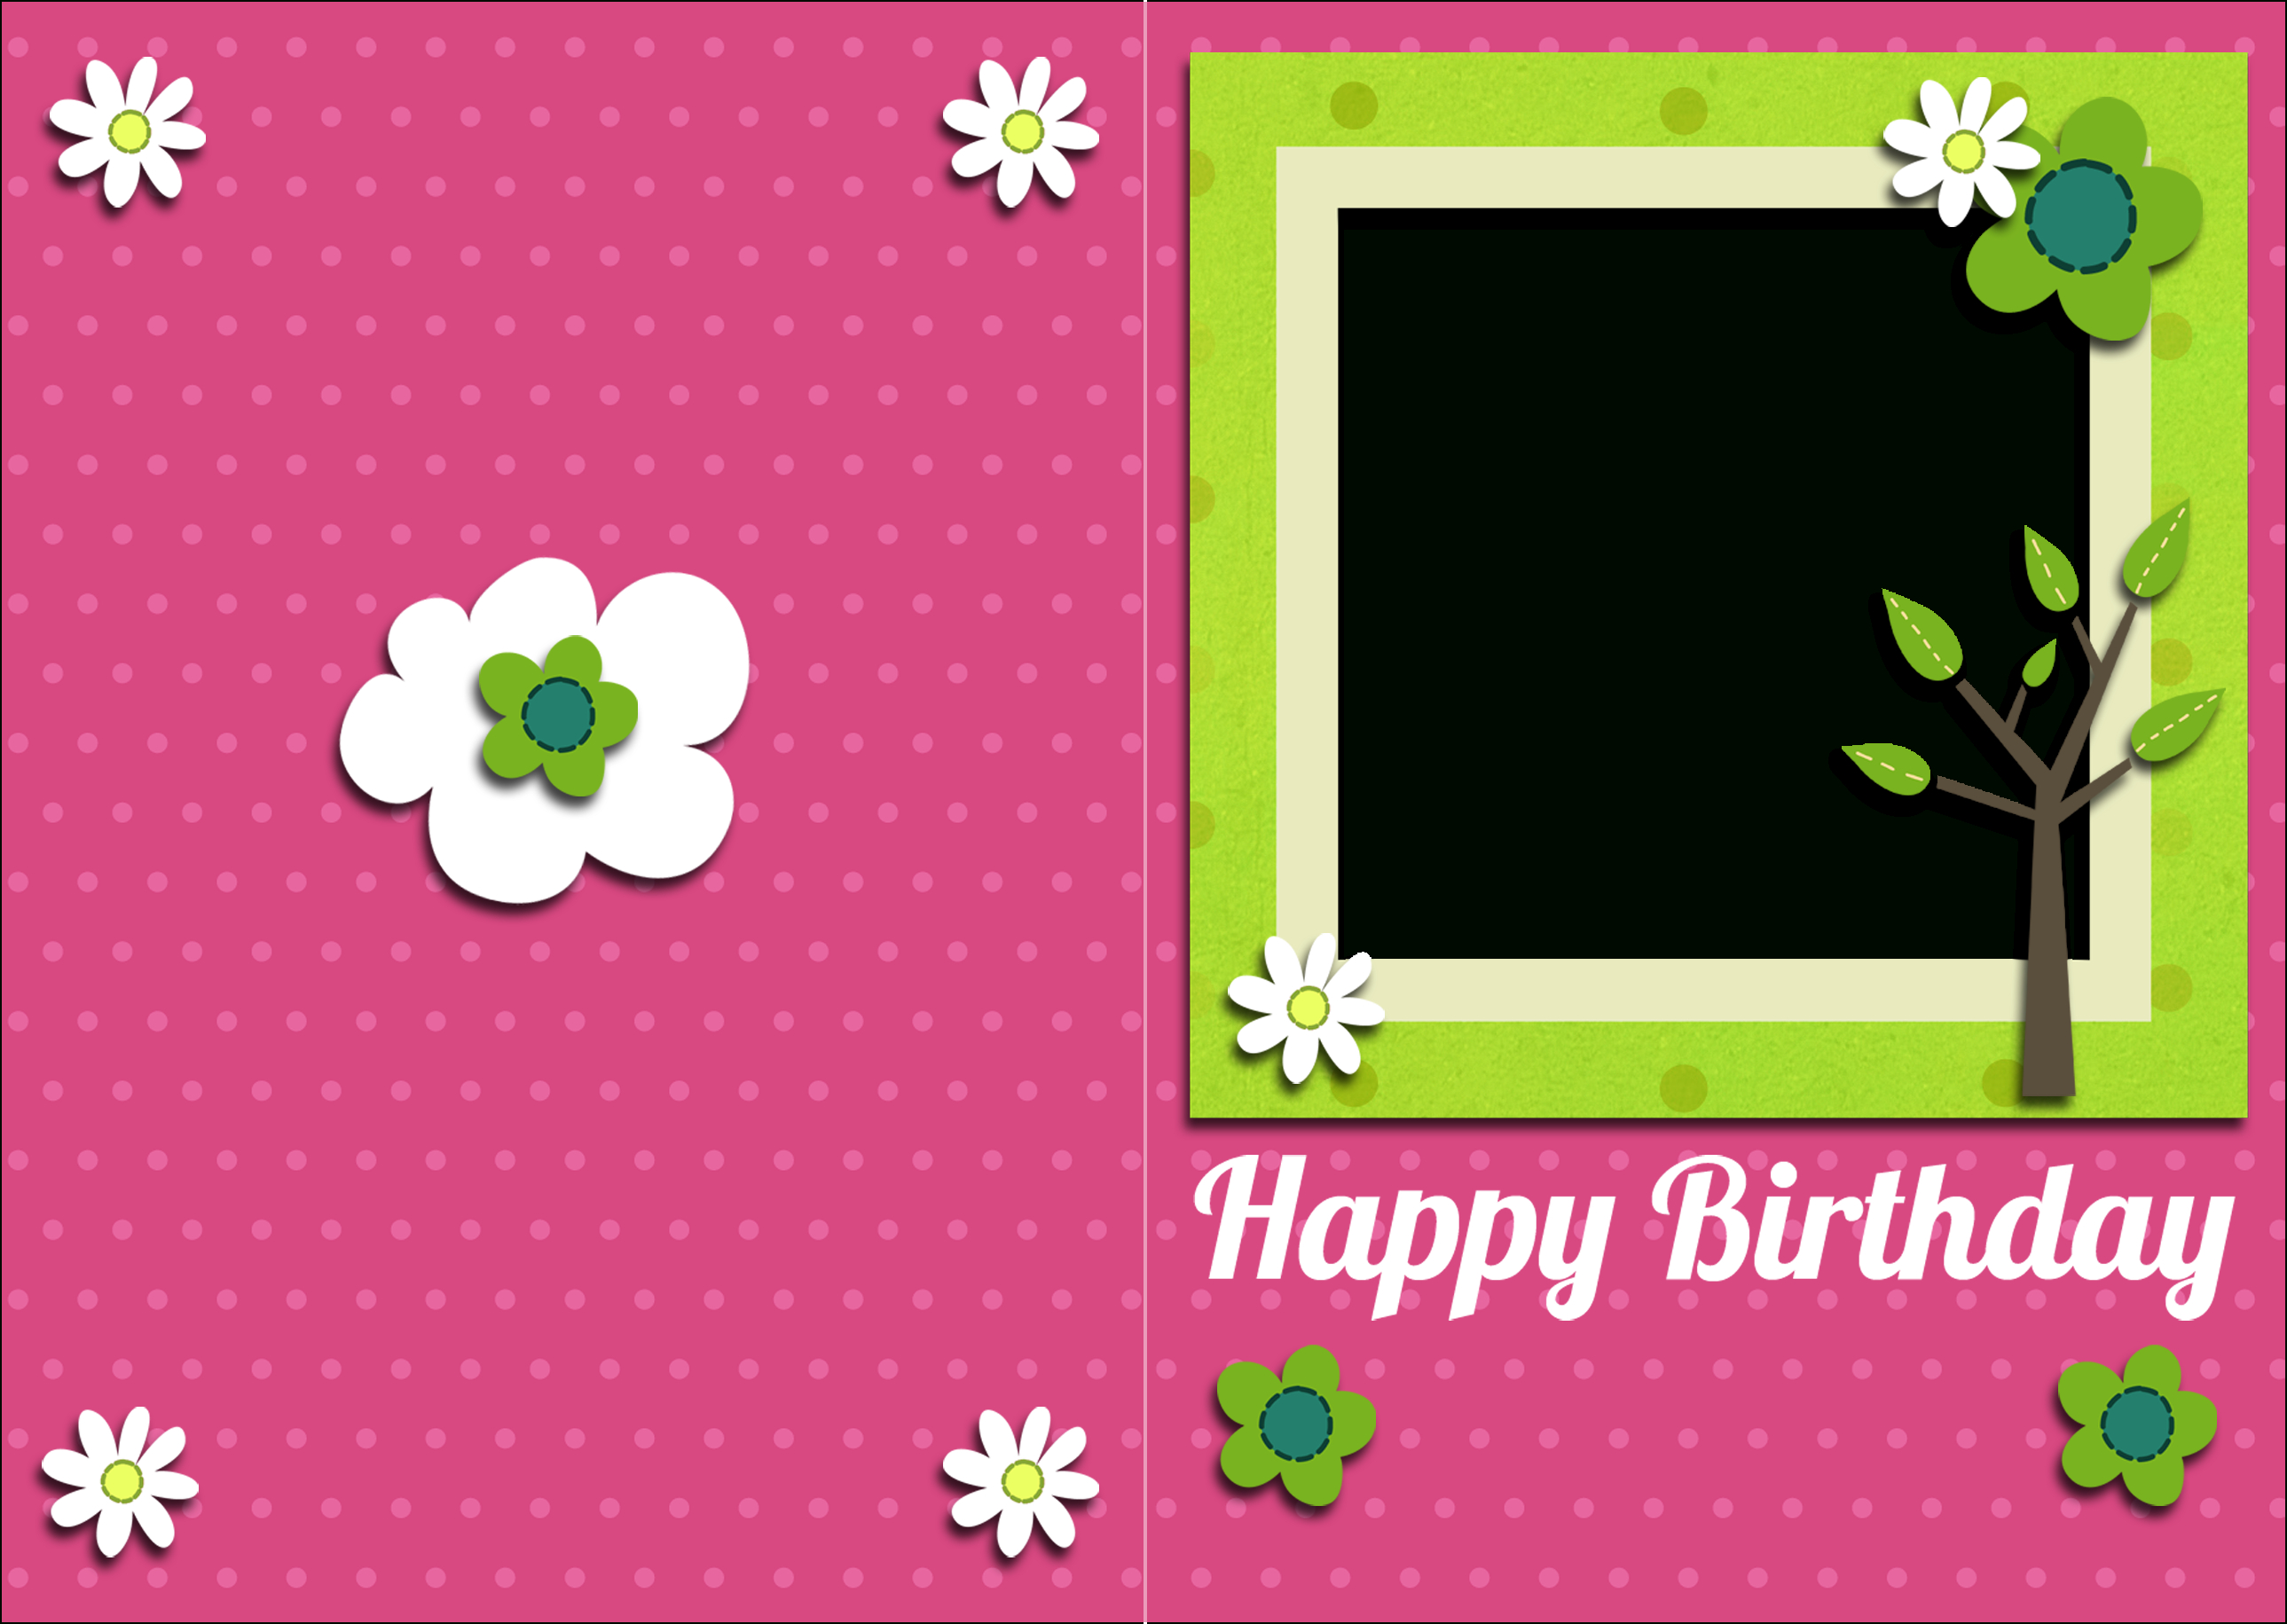 Printable Birthday Cards Hd Wallpapers Download Free Printable - Free Printable Happy Birthday Cards Online